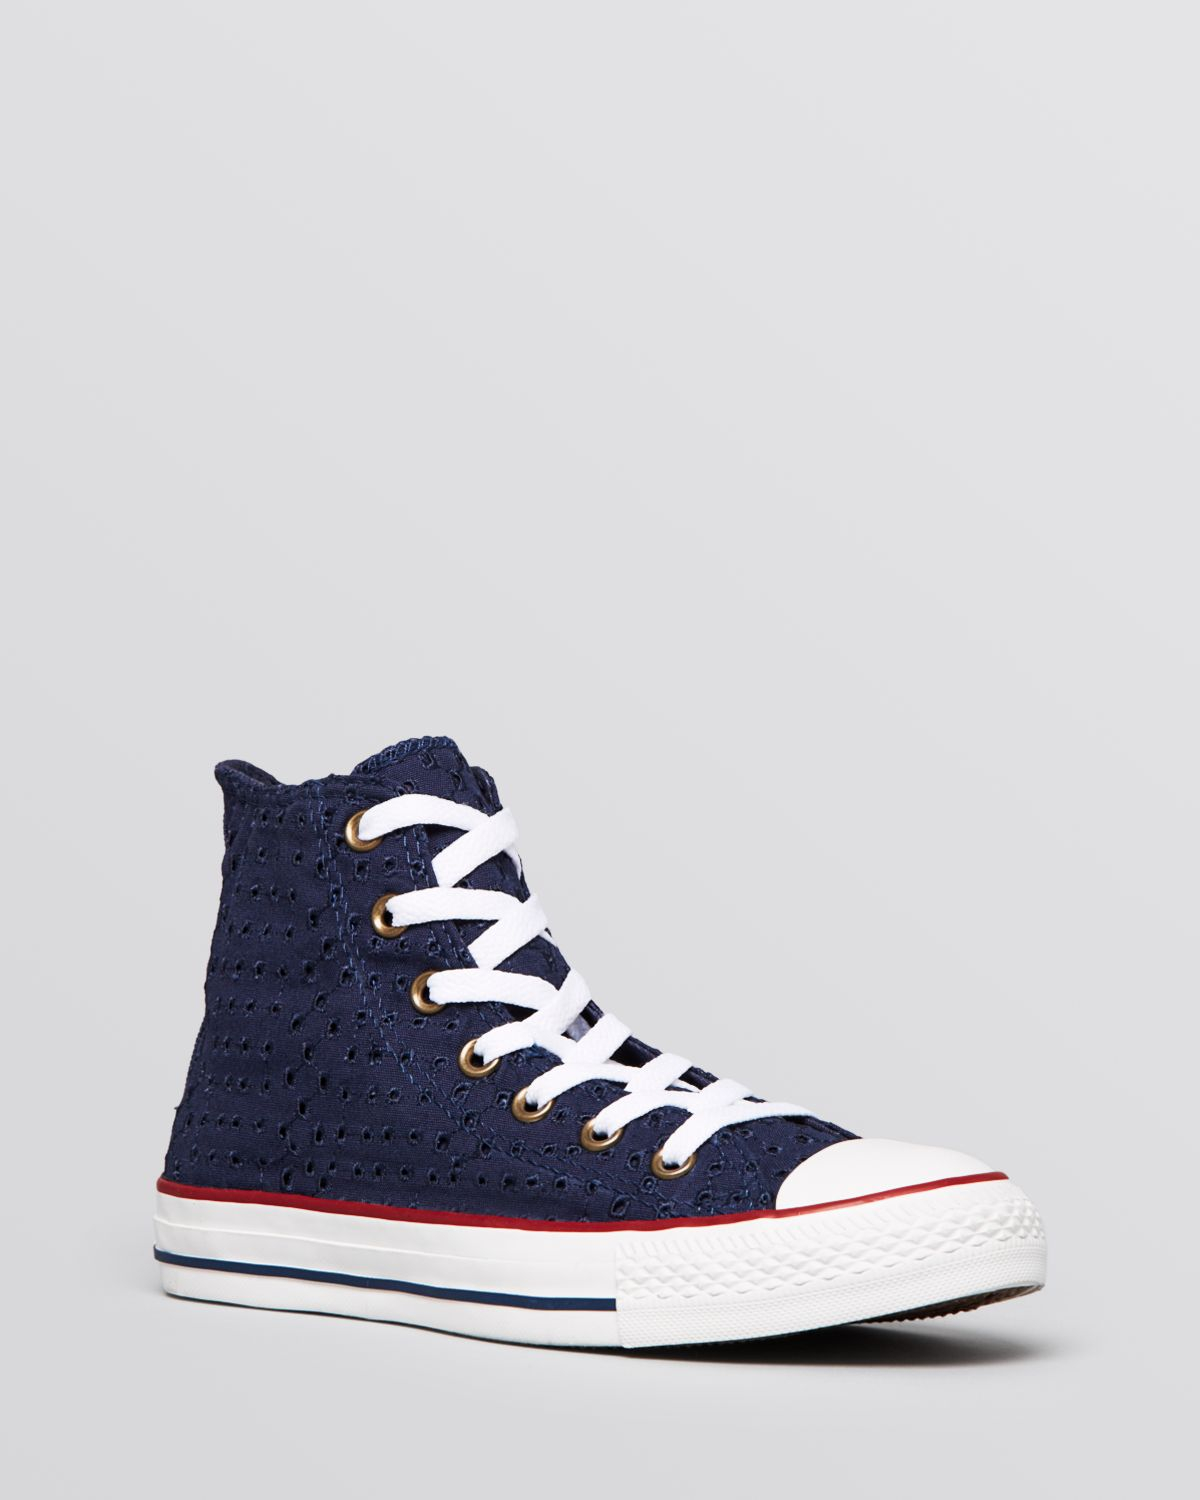 Converse Lace Up High Top Sneakers Chuck Taylor All Star in